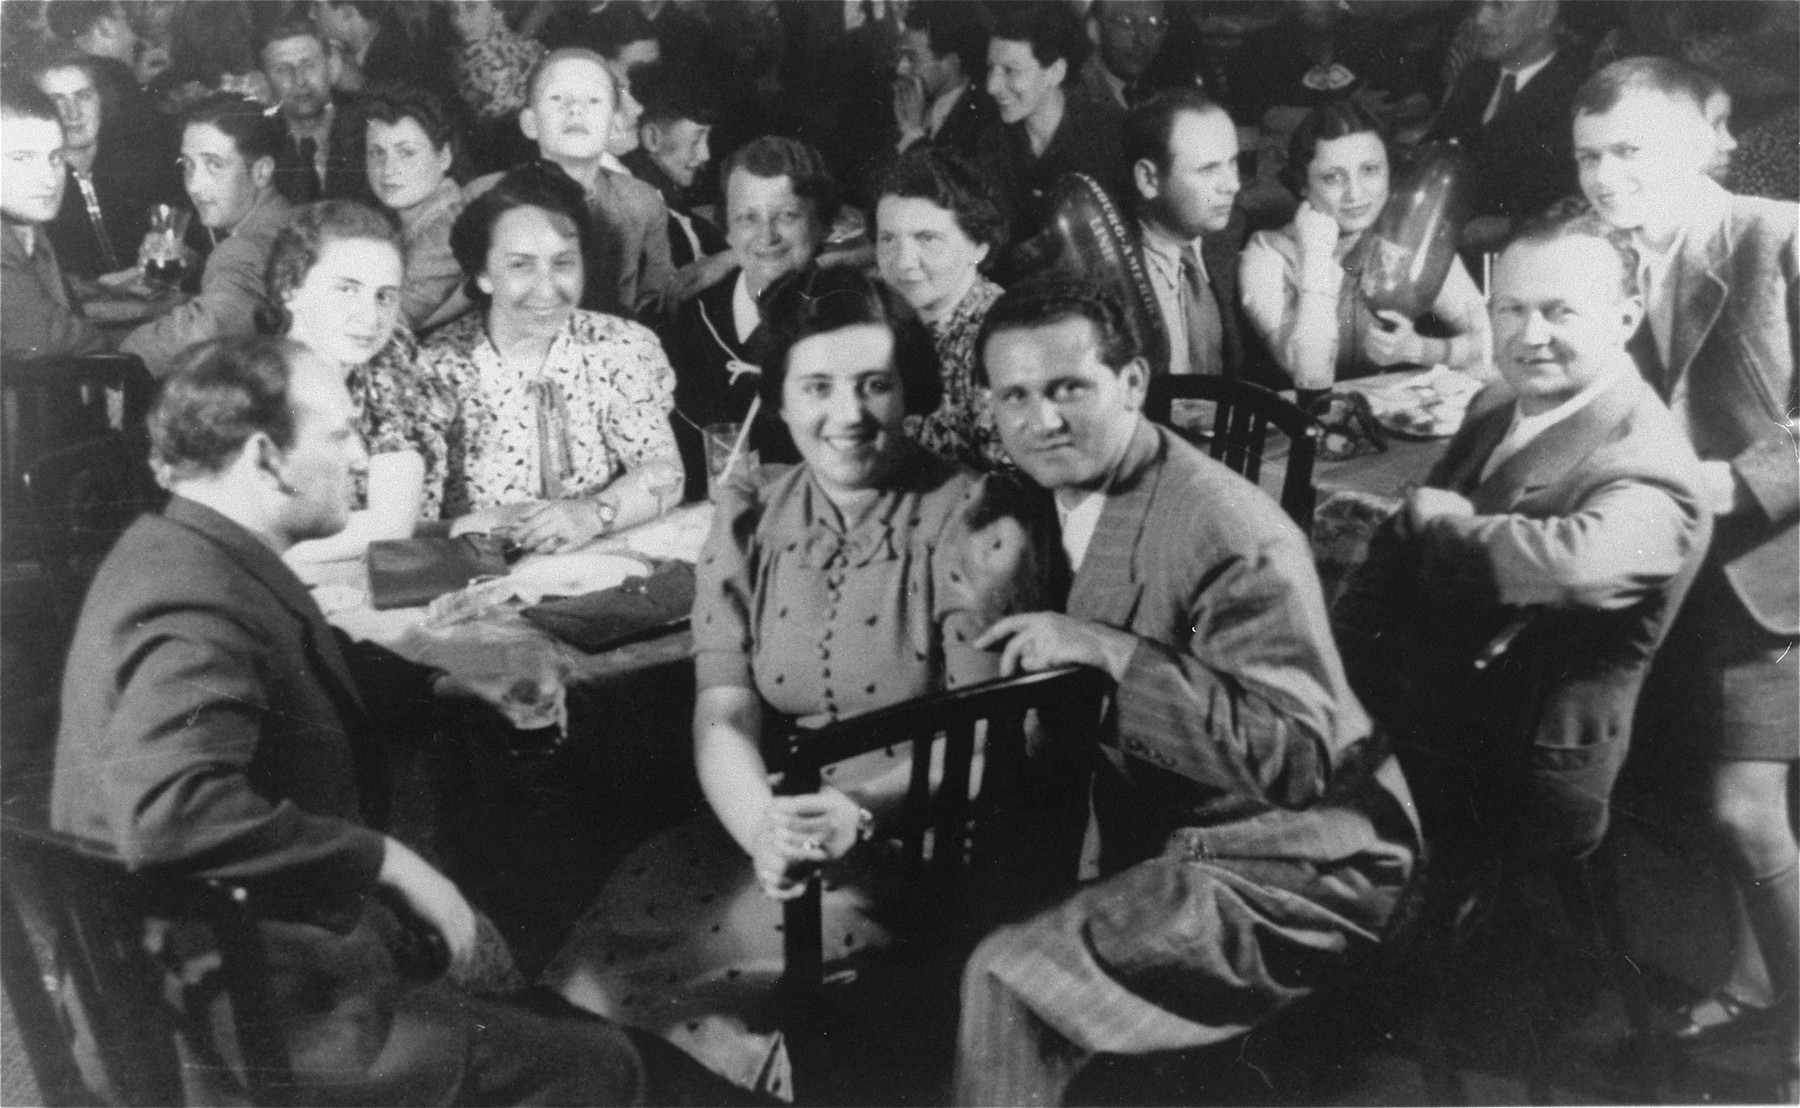 Passengers in the dining room of the MS St. Louis.    Pictured are Walter Weisler, Ursula Spitz, Erna Ring, Herbert Karliner, Margareth [last name unknown], Heinrich Glucksmann, Vera Spitz, Alfred and Sophie Aron, Walter Karliner, and Erich Ring.